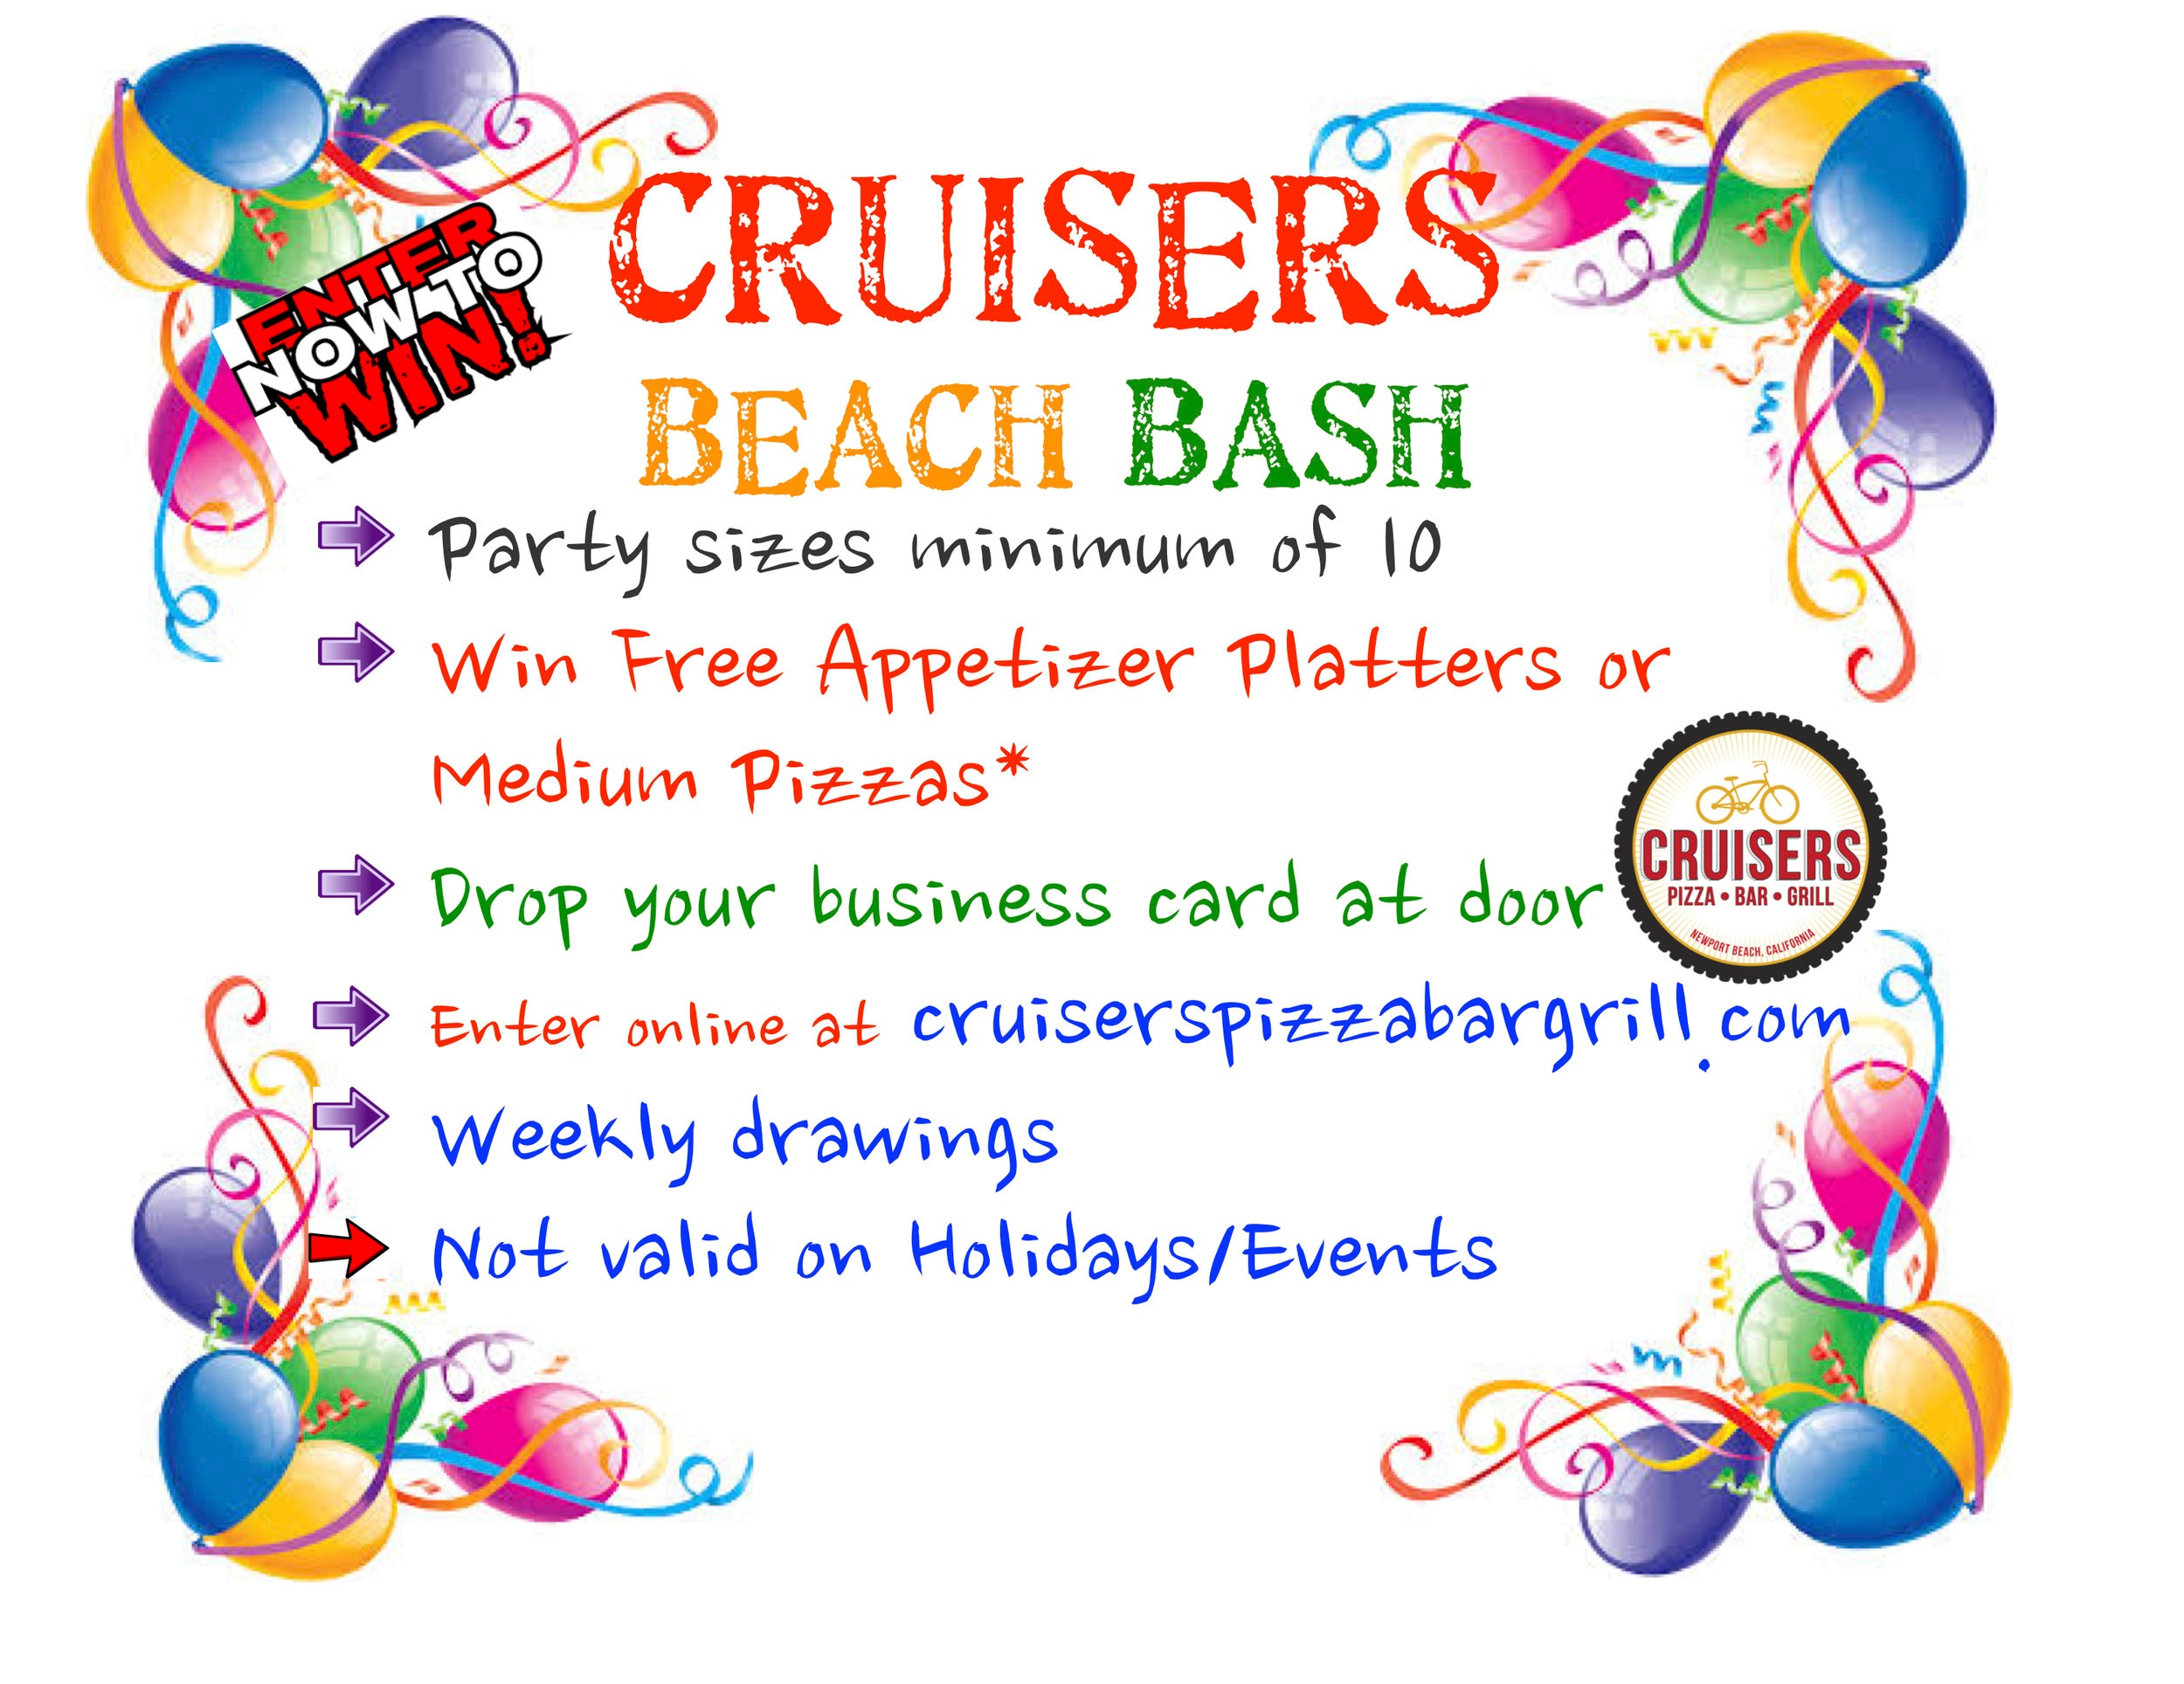 Cruiser+Beach+Bash+Small.jpg